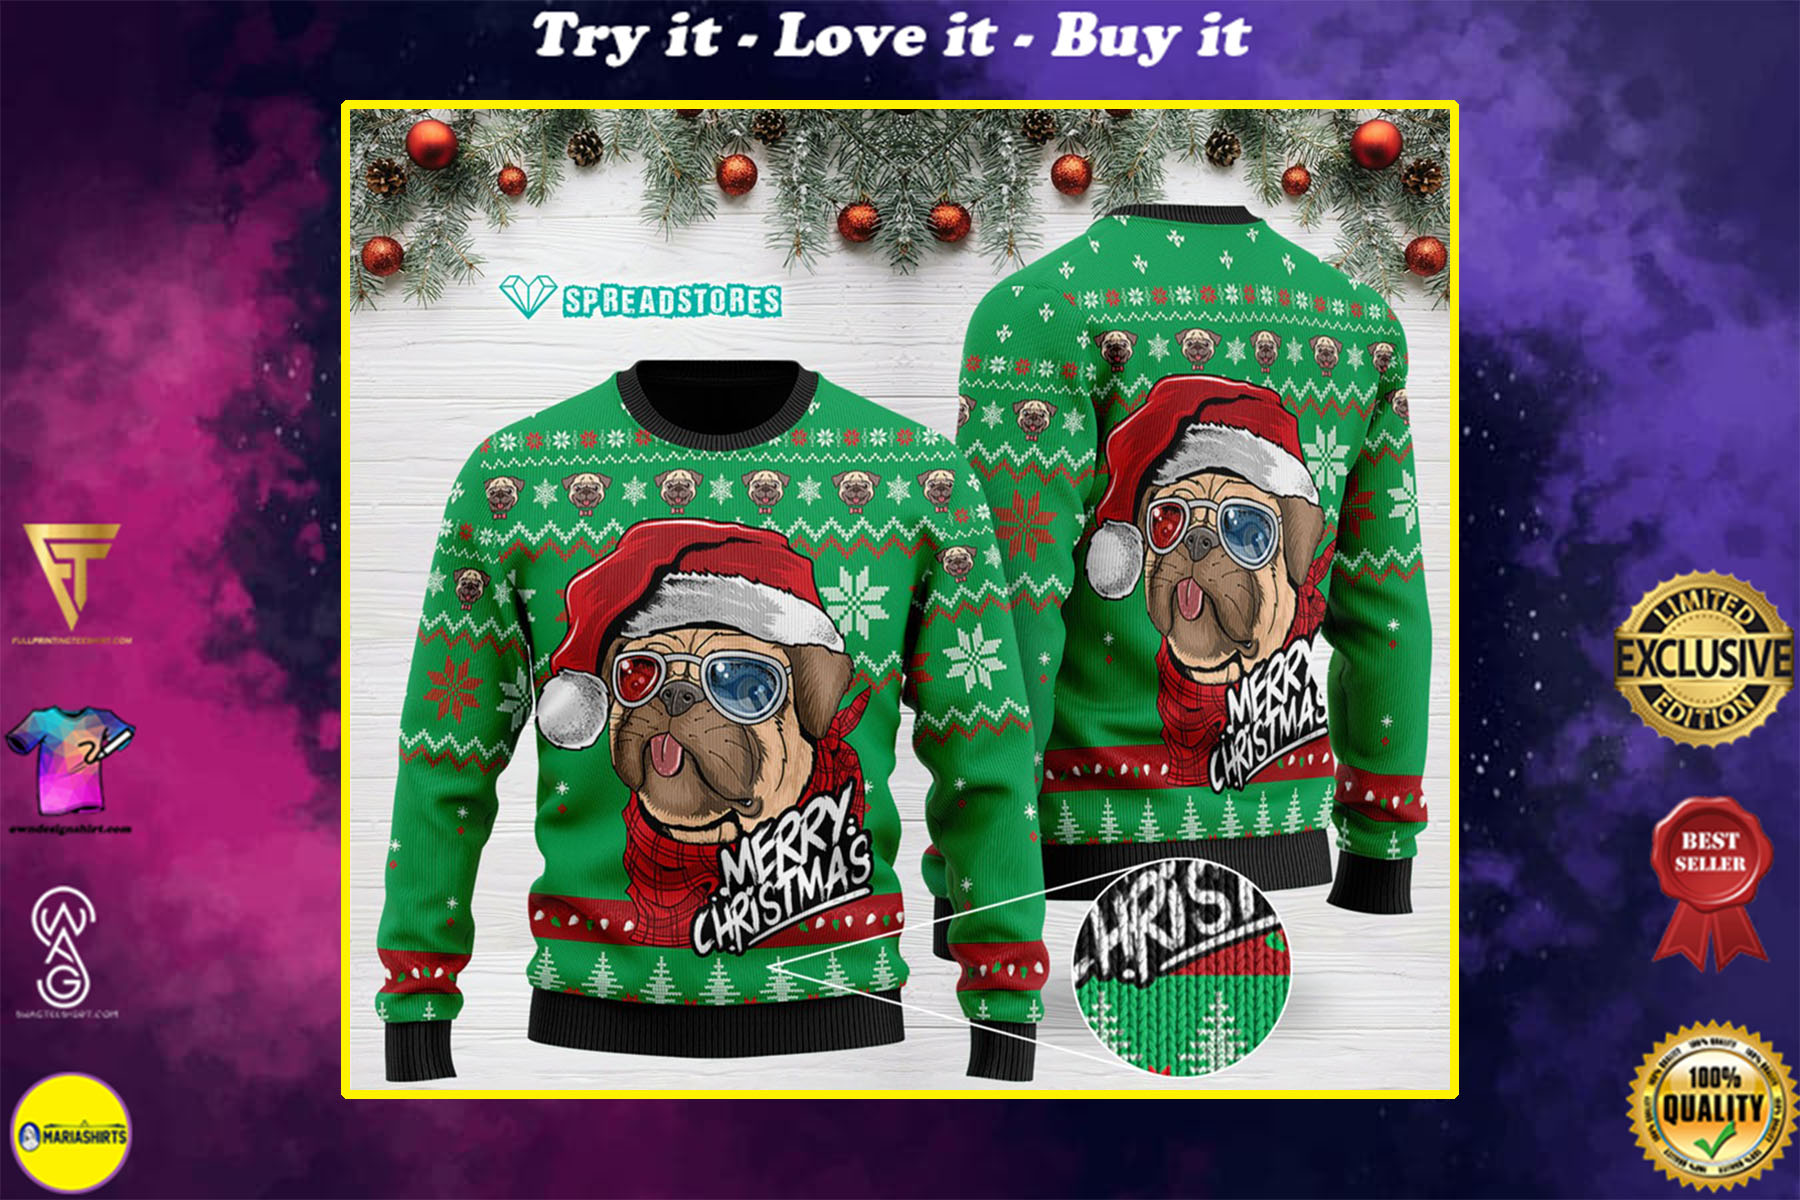 [special edition] pug merry christmas all over printed ugly christmas sweater - maria